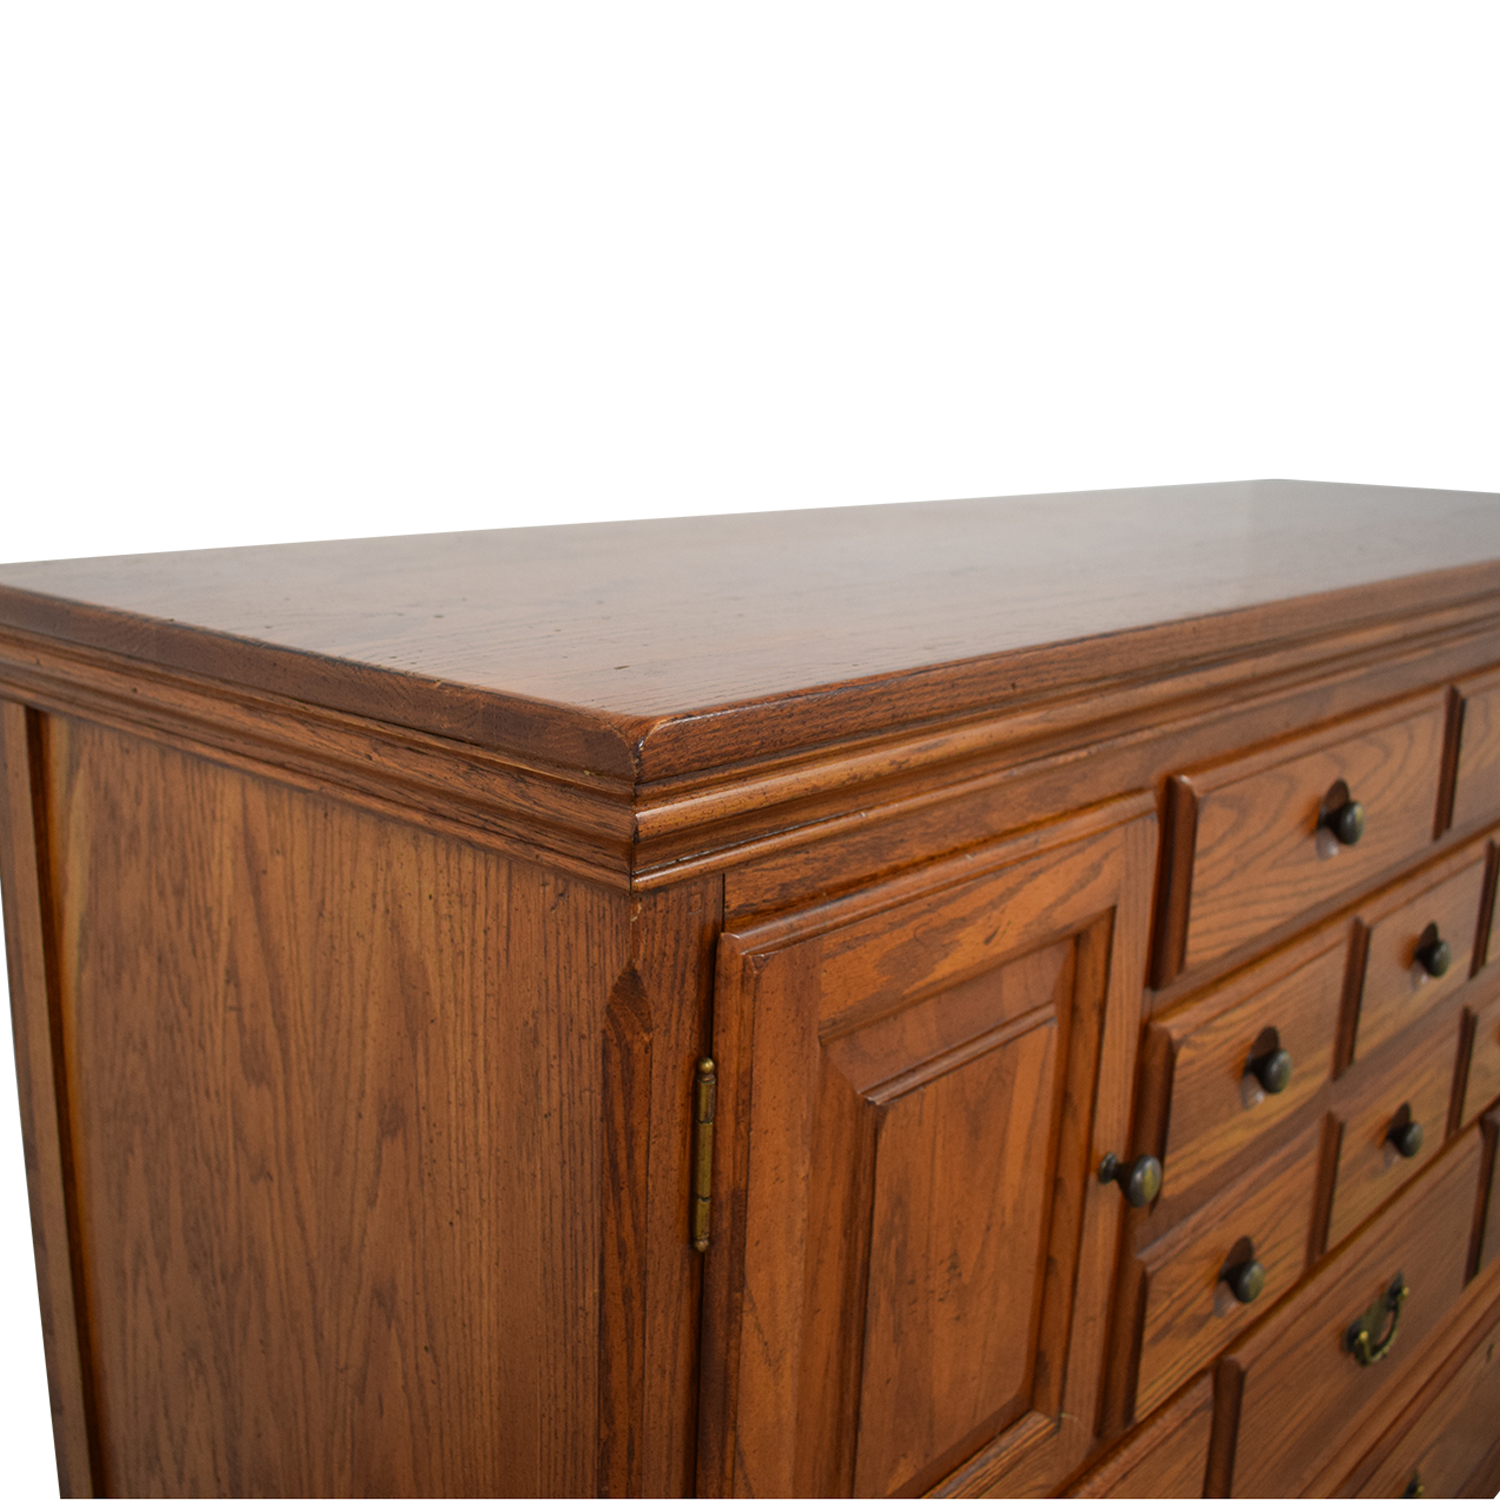 shop Kincaid Furniture Solid Wood Dresser Kincaid Furniture Dressers